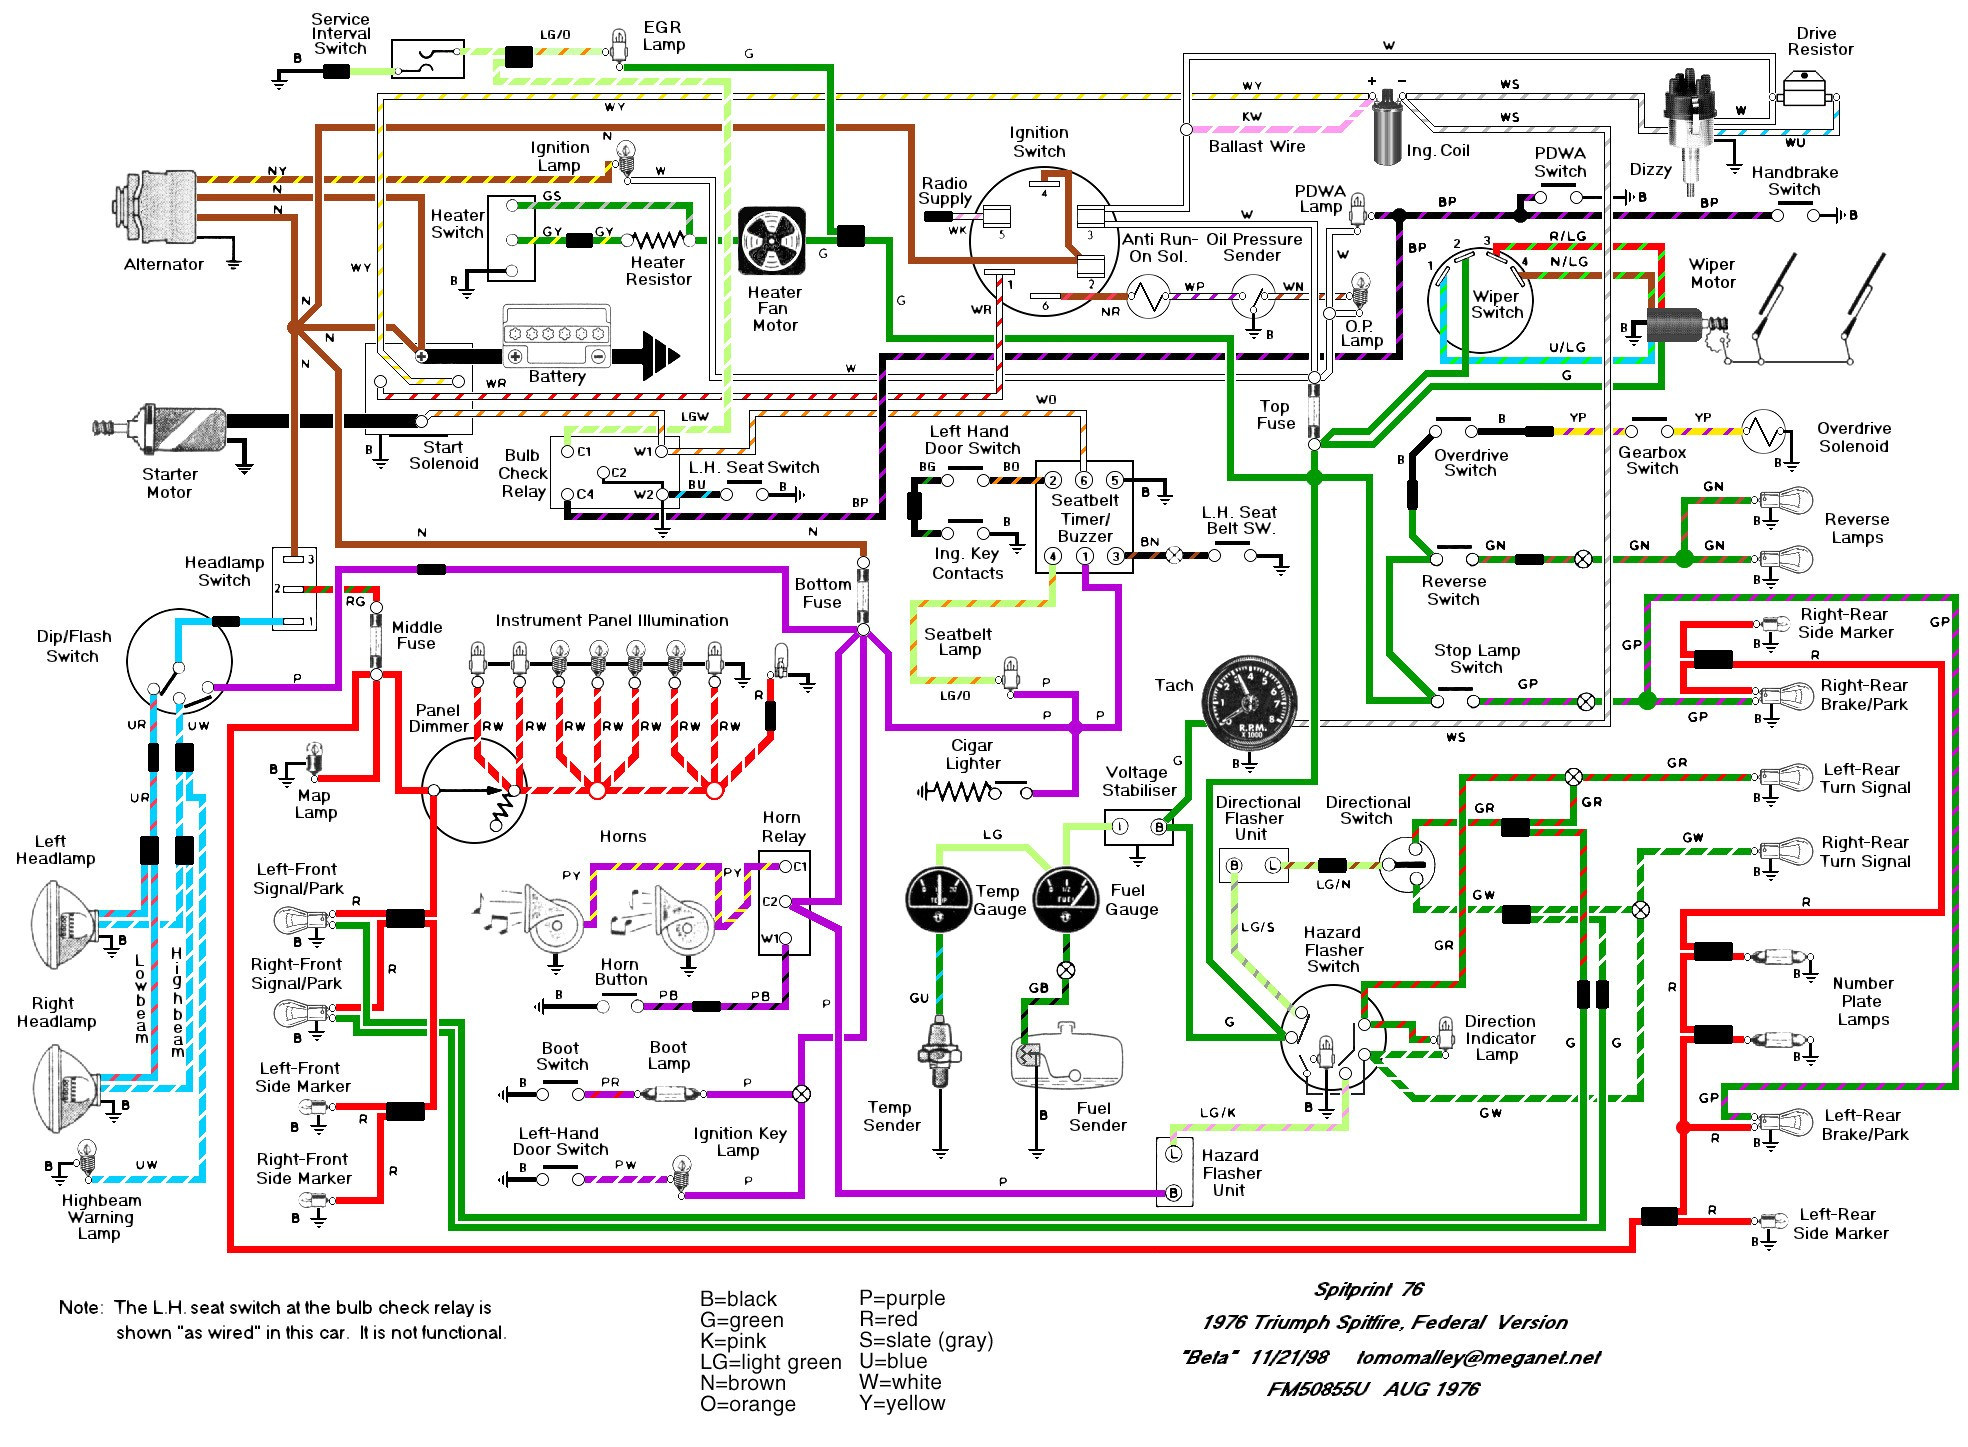 Wiring Diagrams for Cars Tr3 Wiring Diagram Triumph Tr6 Wiring Diagram Album Wire Of Wiring Diagrams for Cars